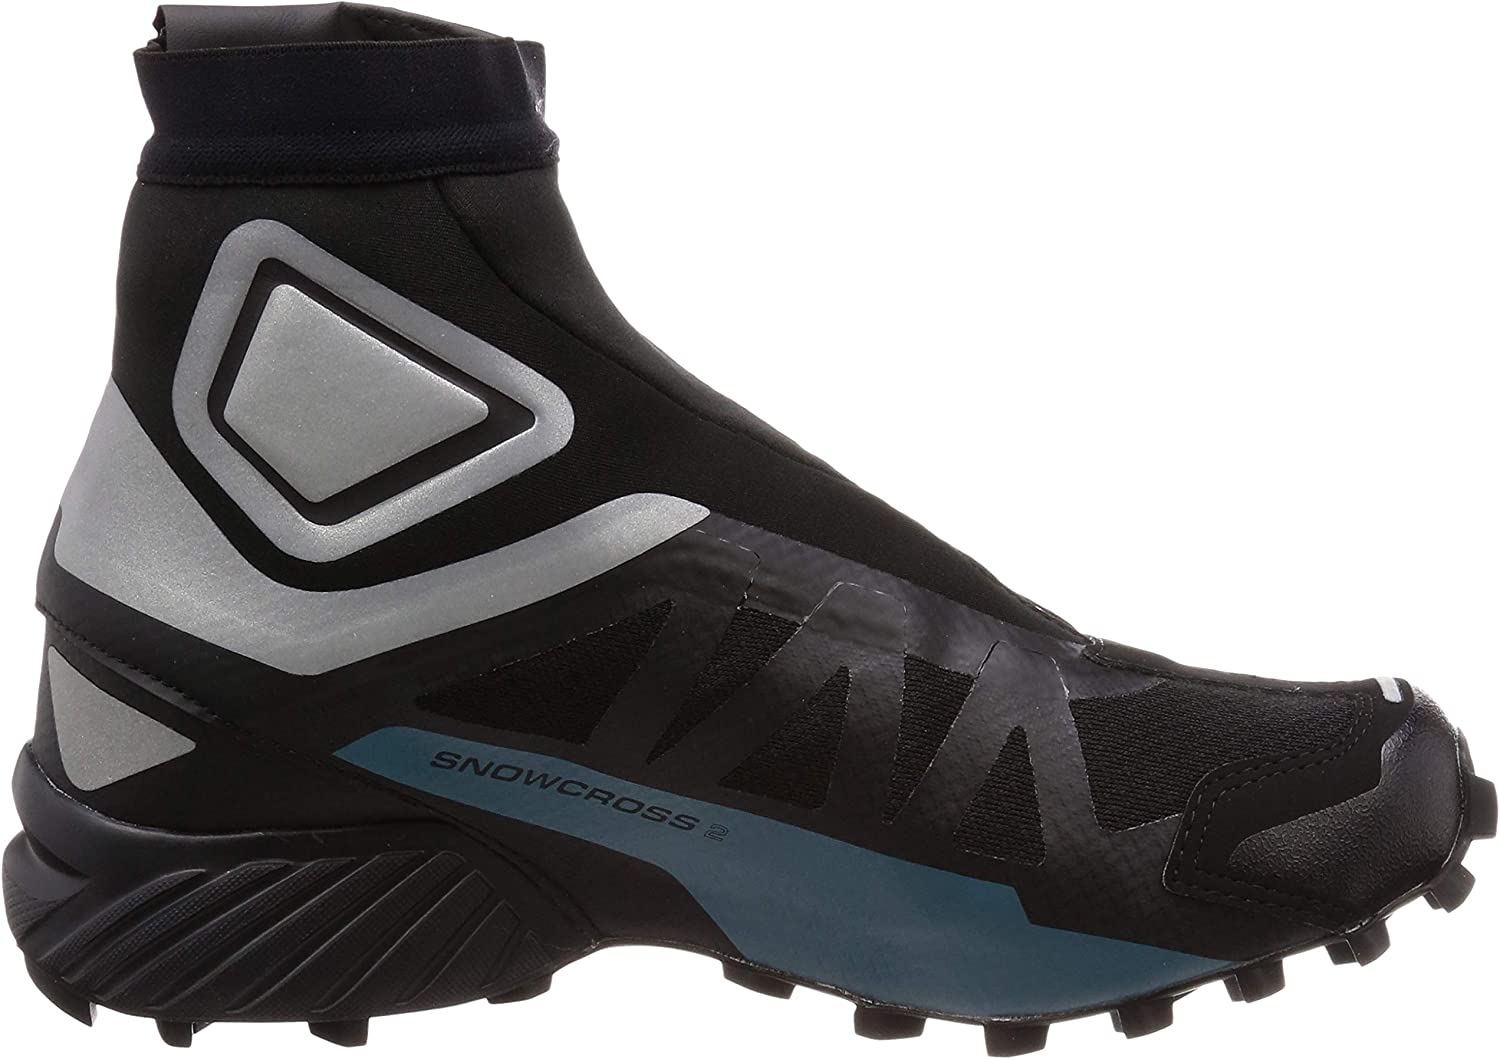 salomon men's snowcross 2 cswp trail running shoes vs